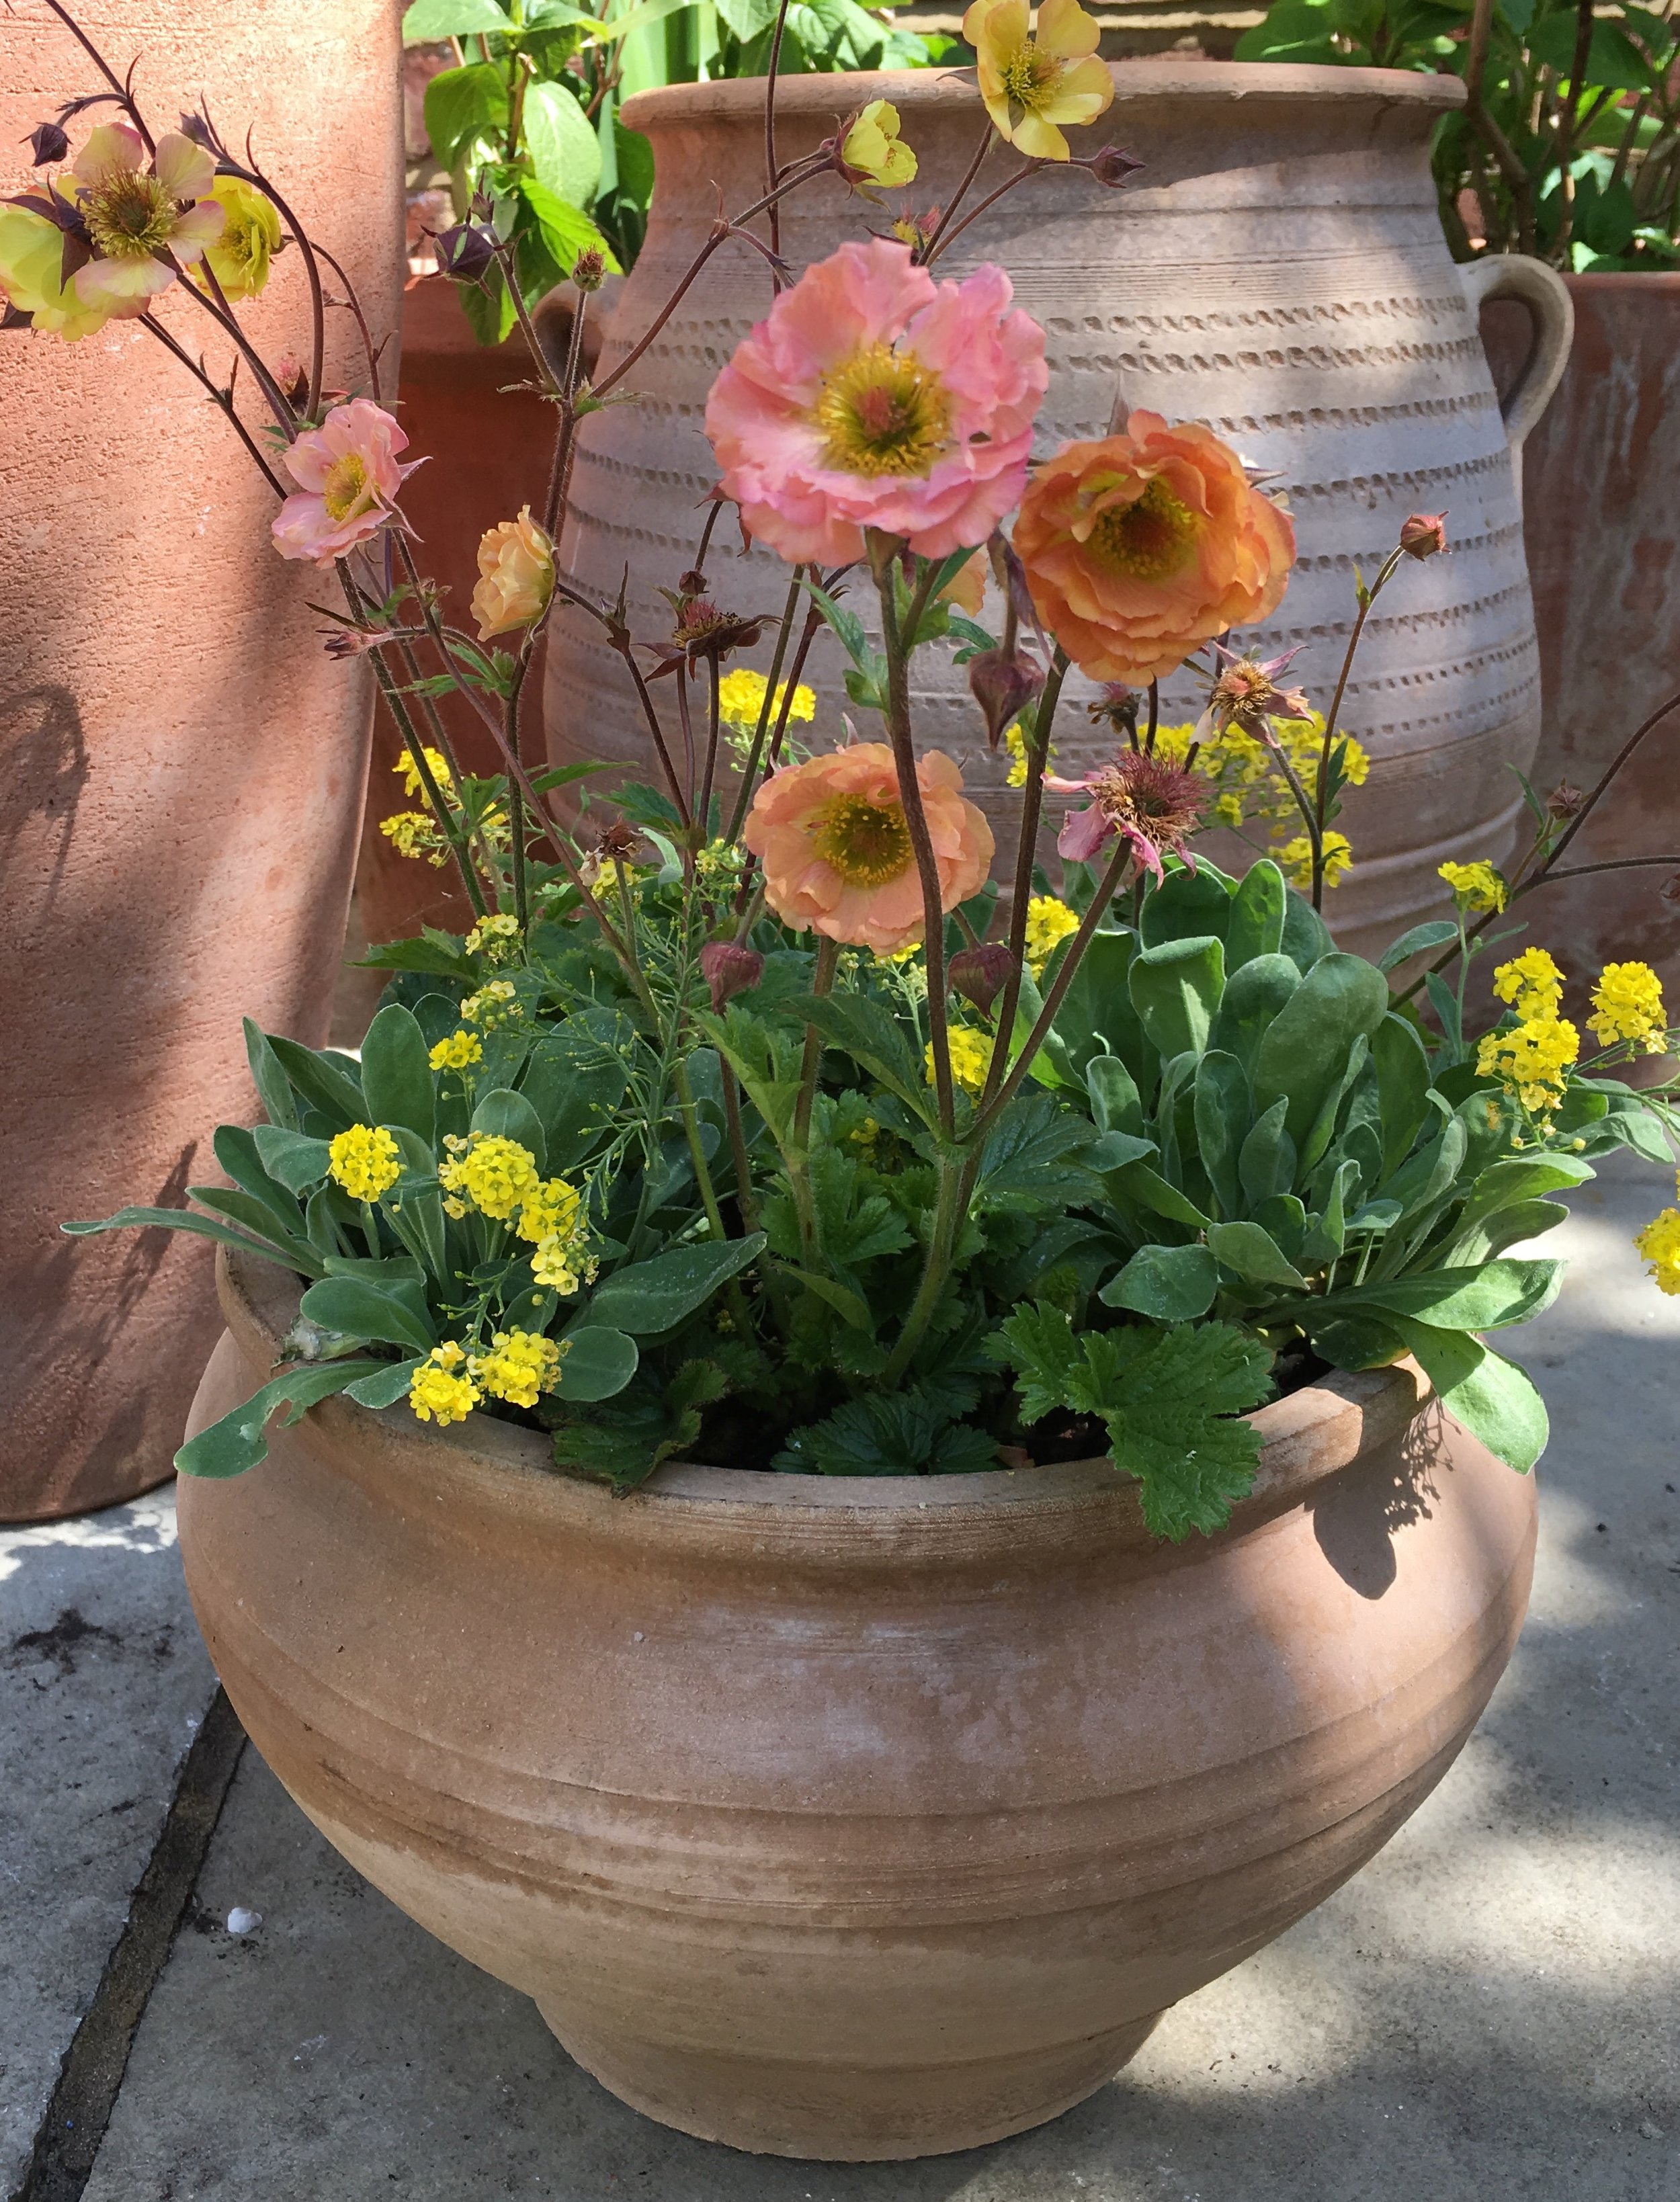 joanna archer container planting.jpg